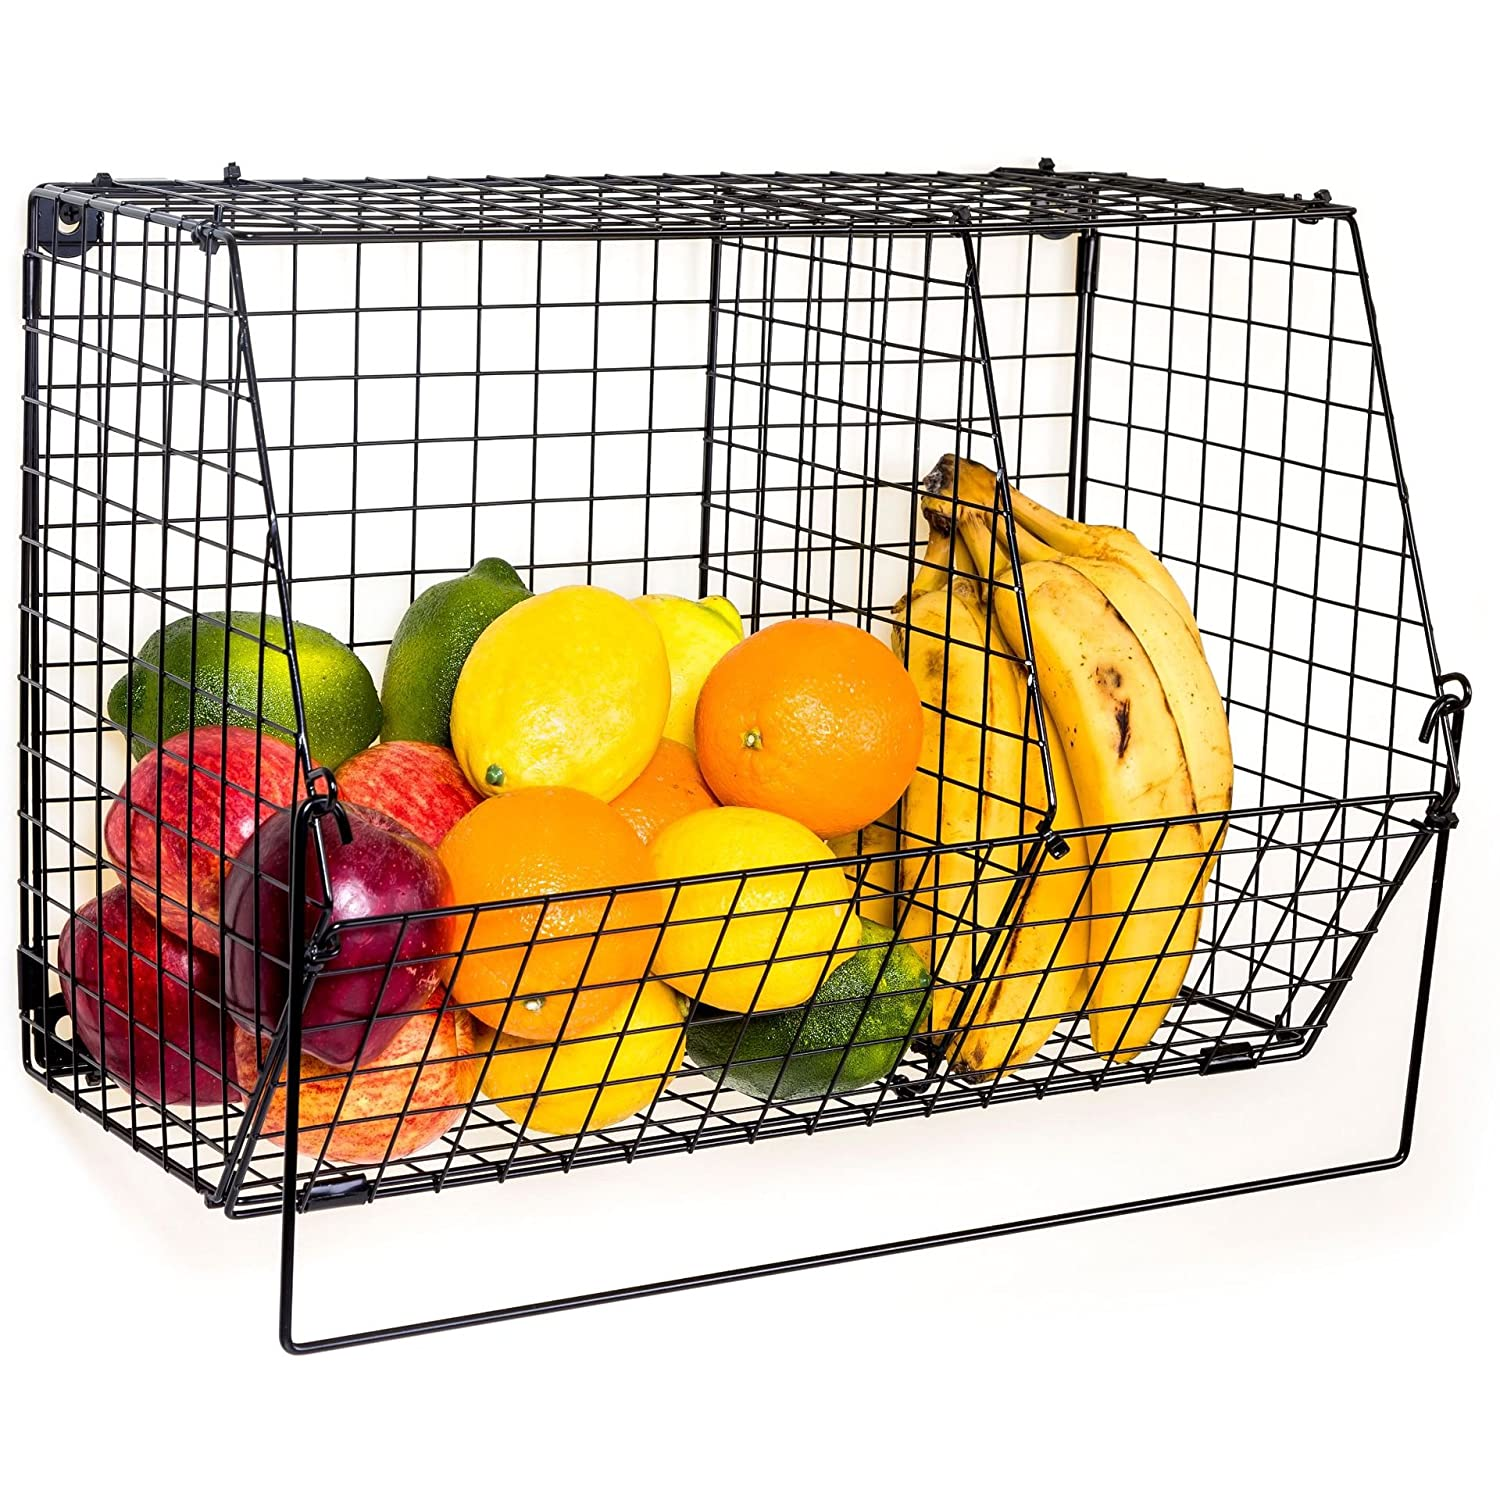 Amazon.com - ChasBete Folding Metal Basket Fruit Bowls Organizer ...